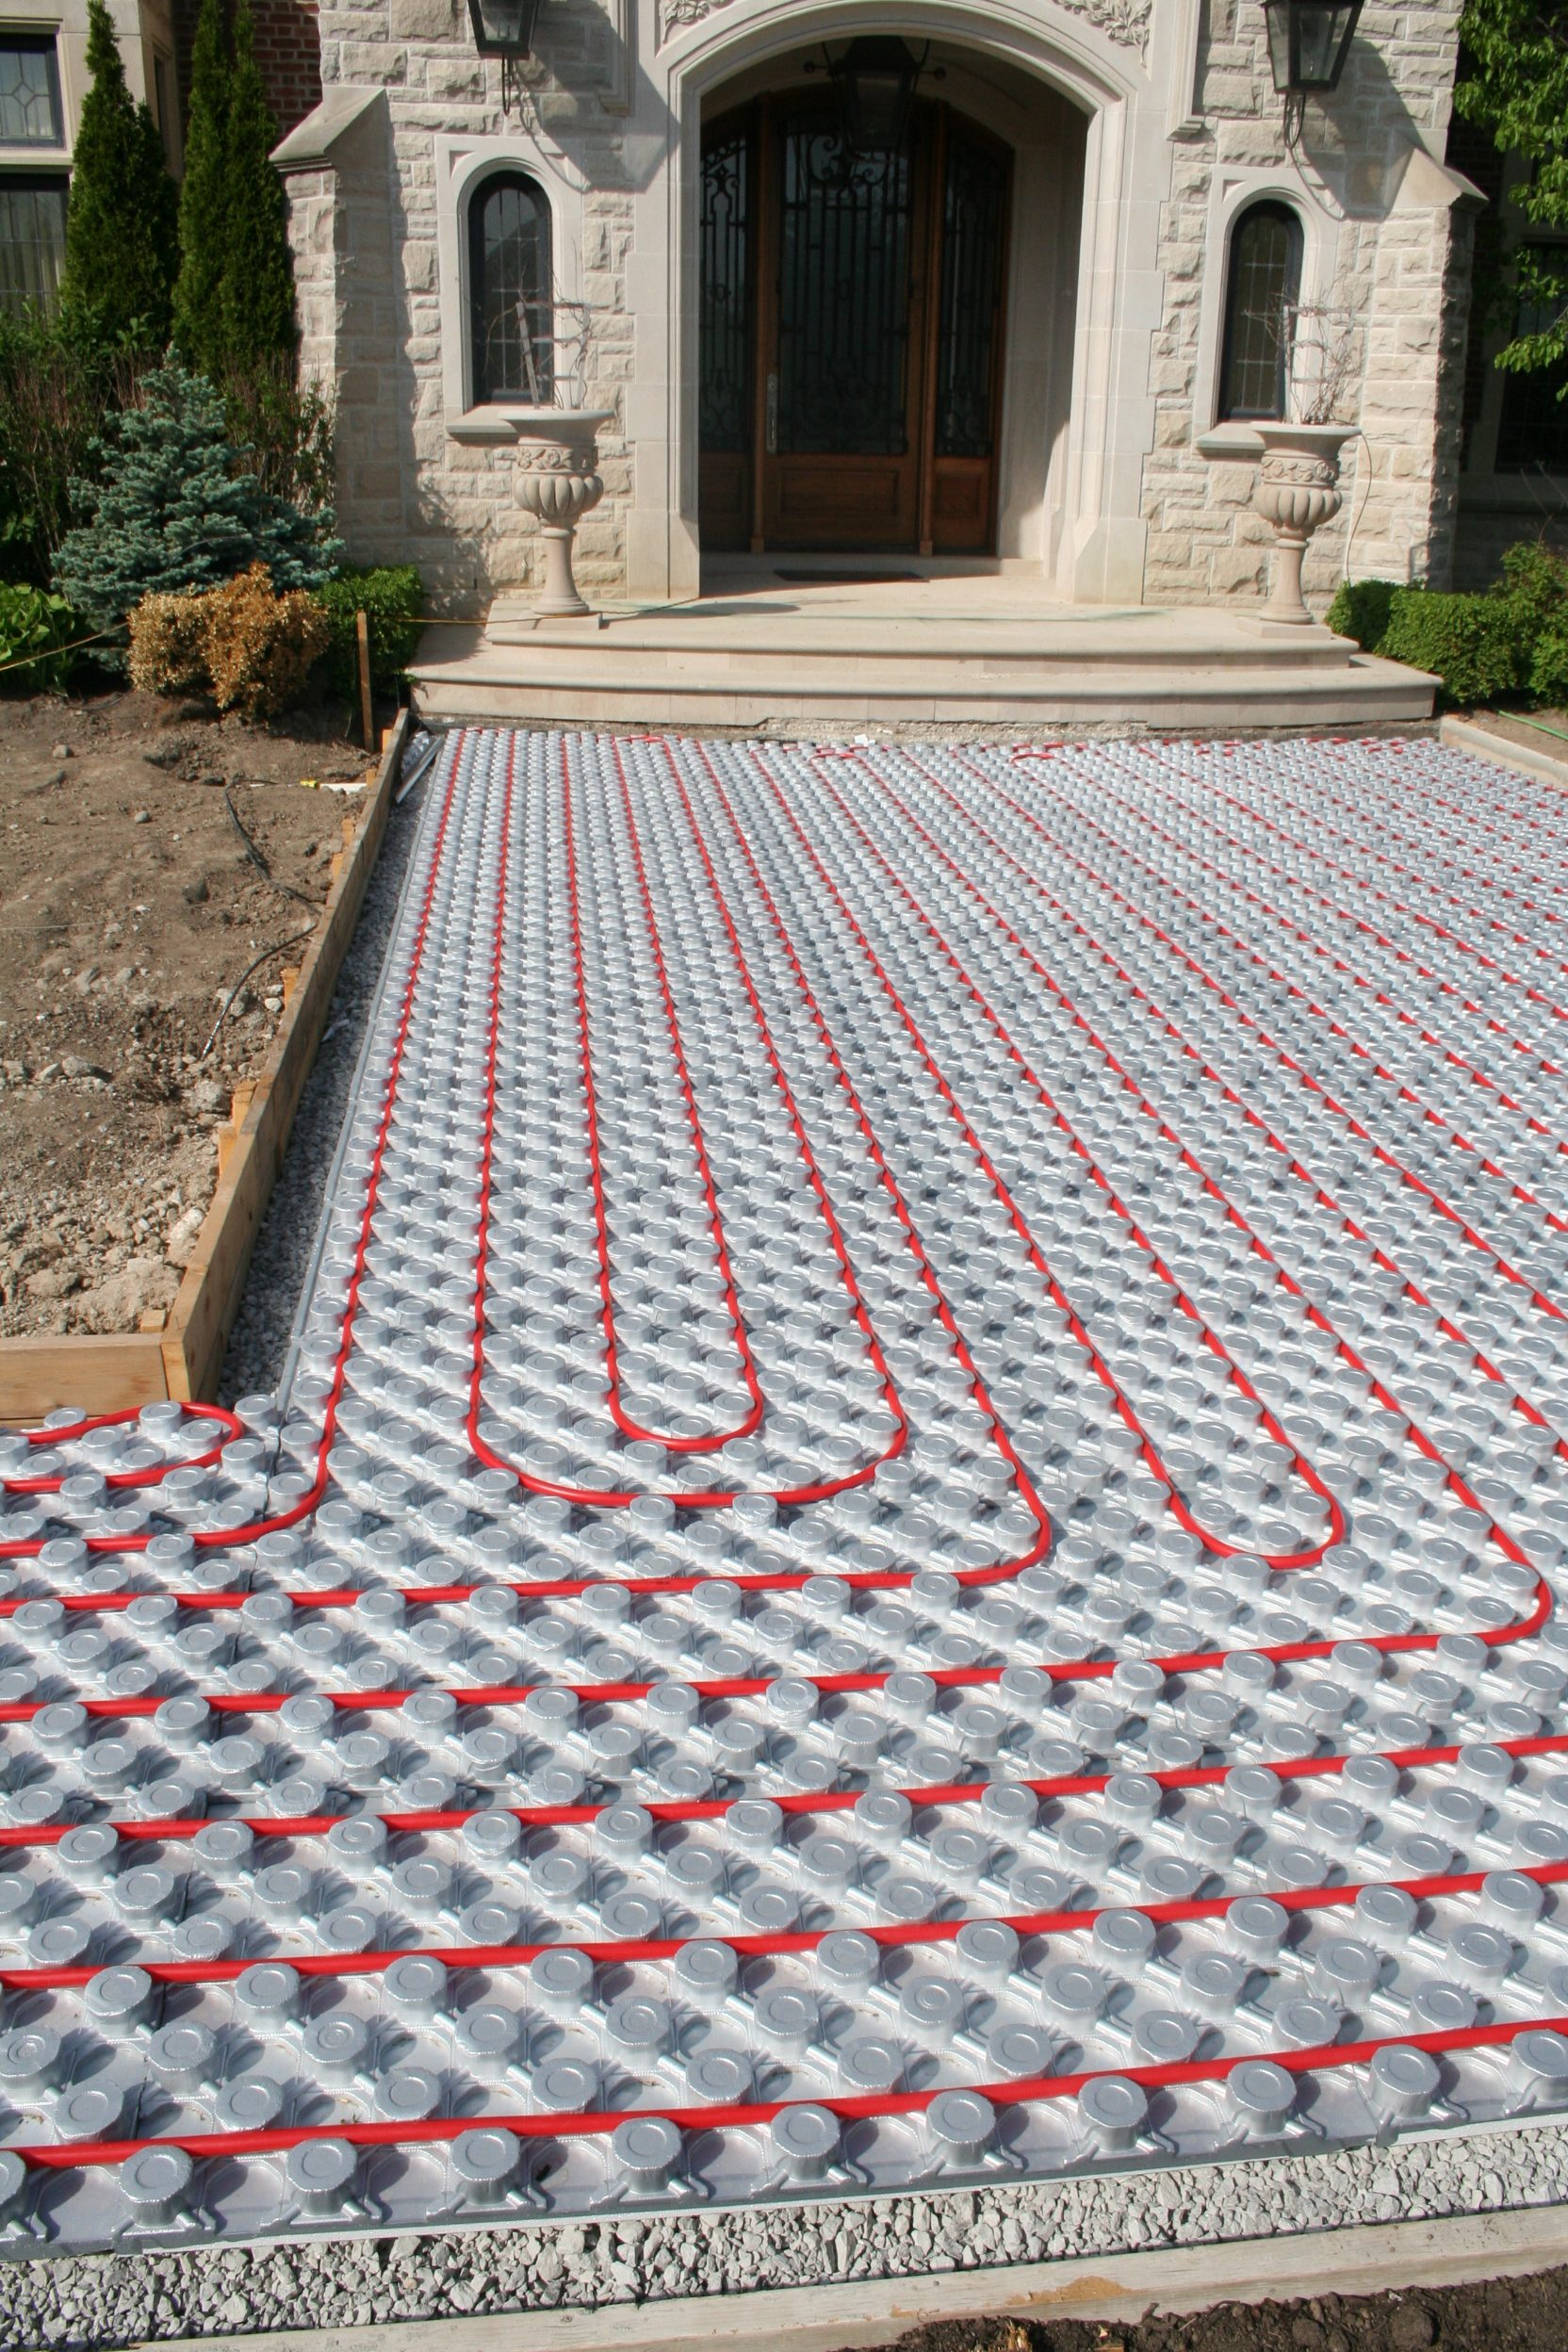 The Comfort Radiant Floor Heating Amvic Systems